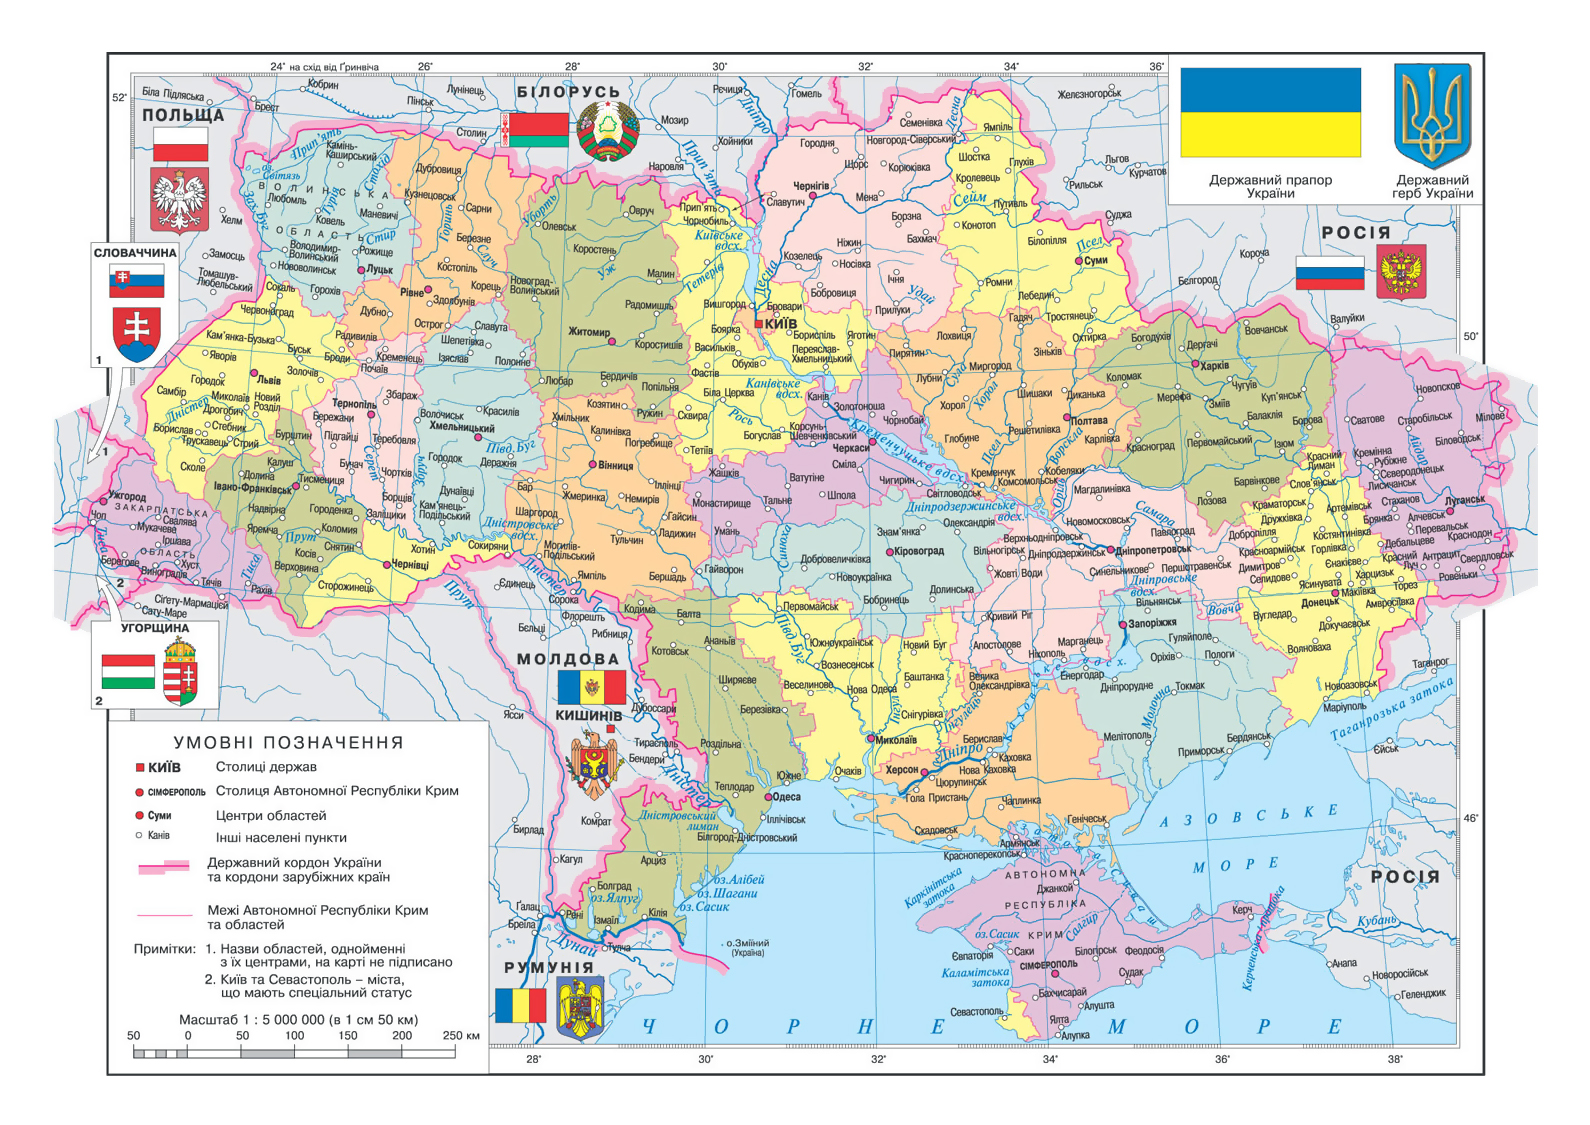 Ukraine On Map Of Europe.Detailed Political And Administrative Map Of Ukraine In Ukrainian